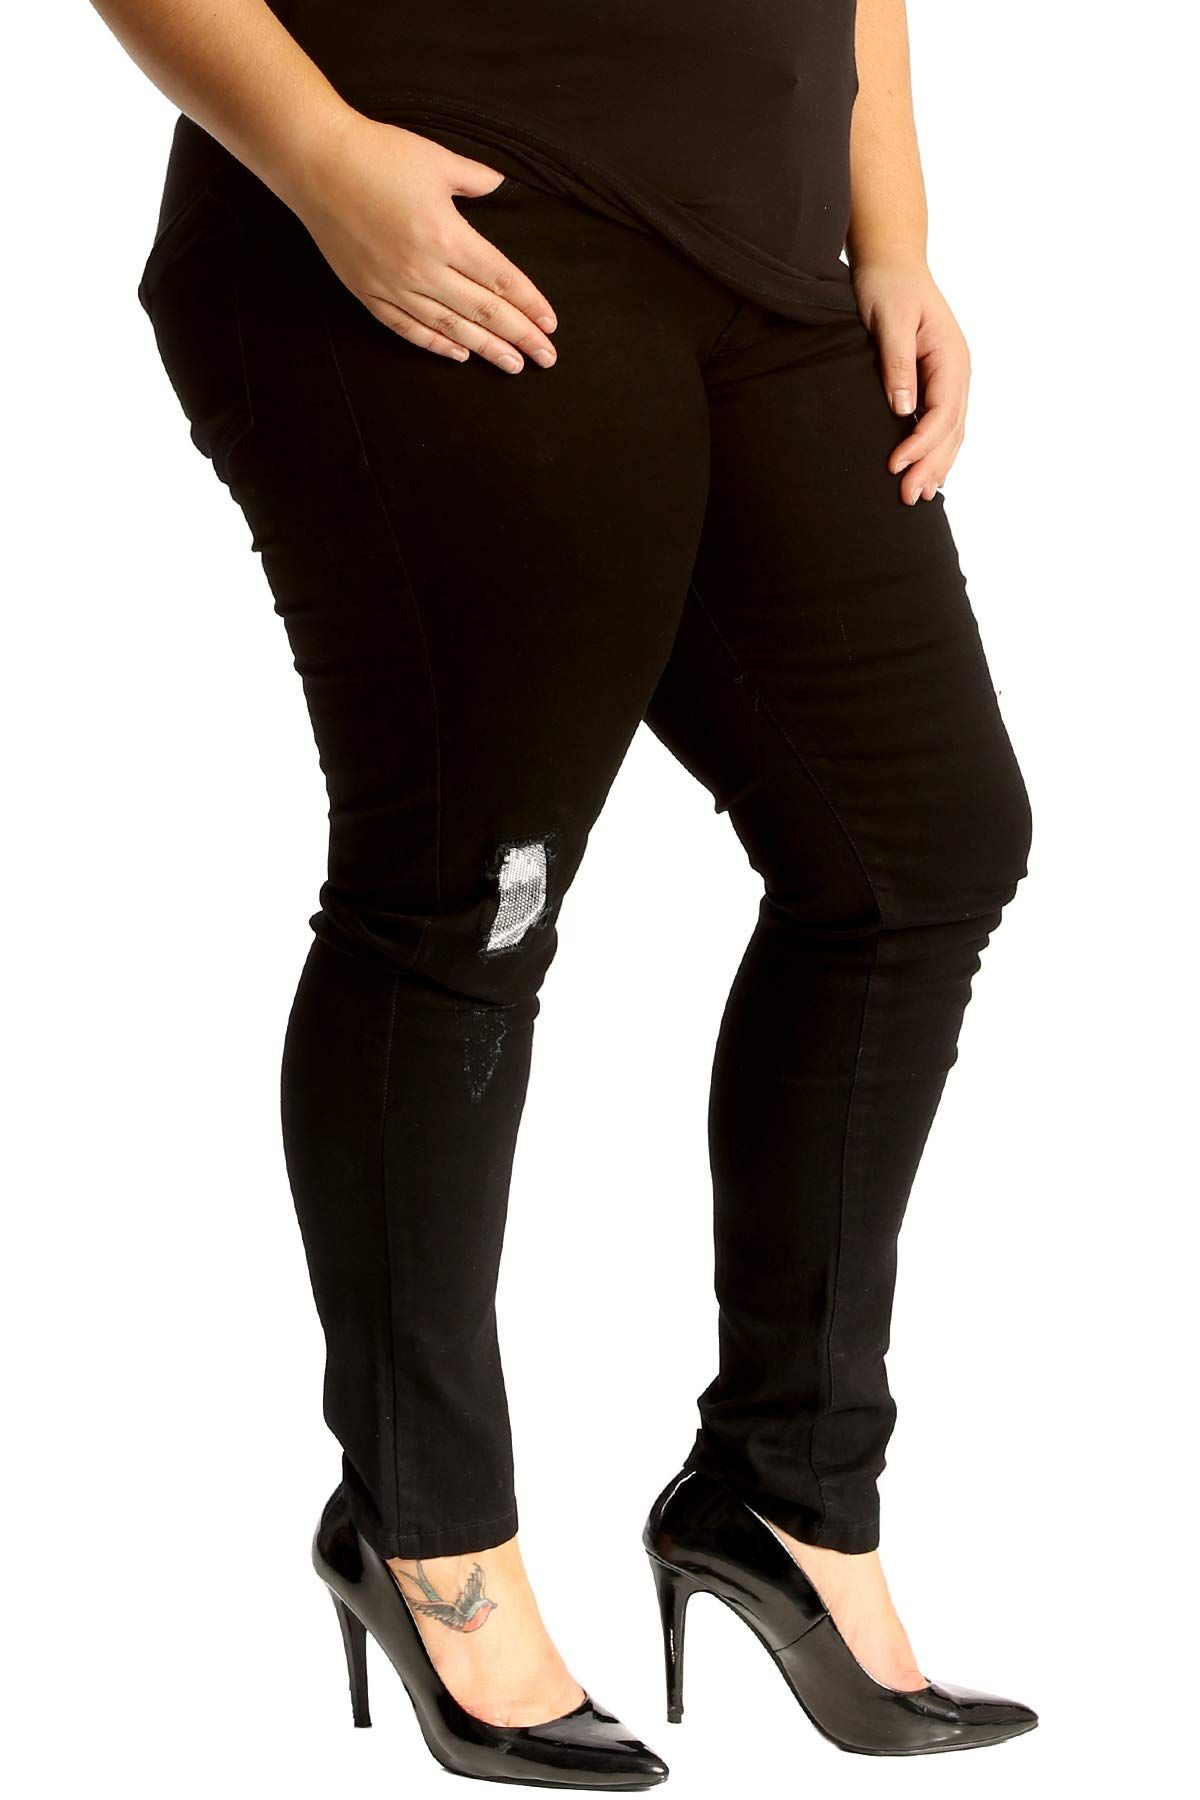 8cf3778d9f6 Fashion Bug. Silver Sequin Patched Ripped Jeans Black 20 www.fashionbug.us   plussize  fashionbug  jeans